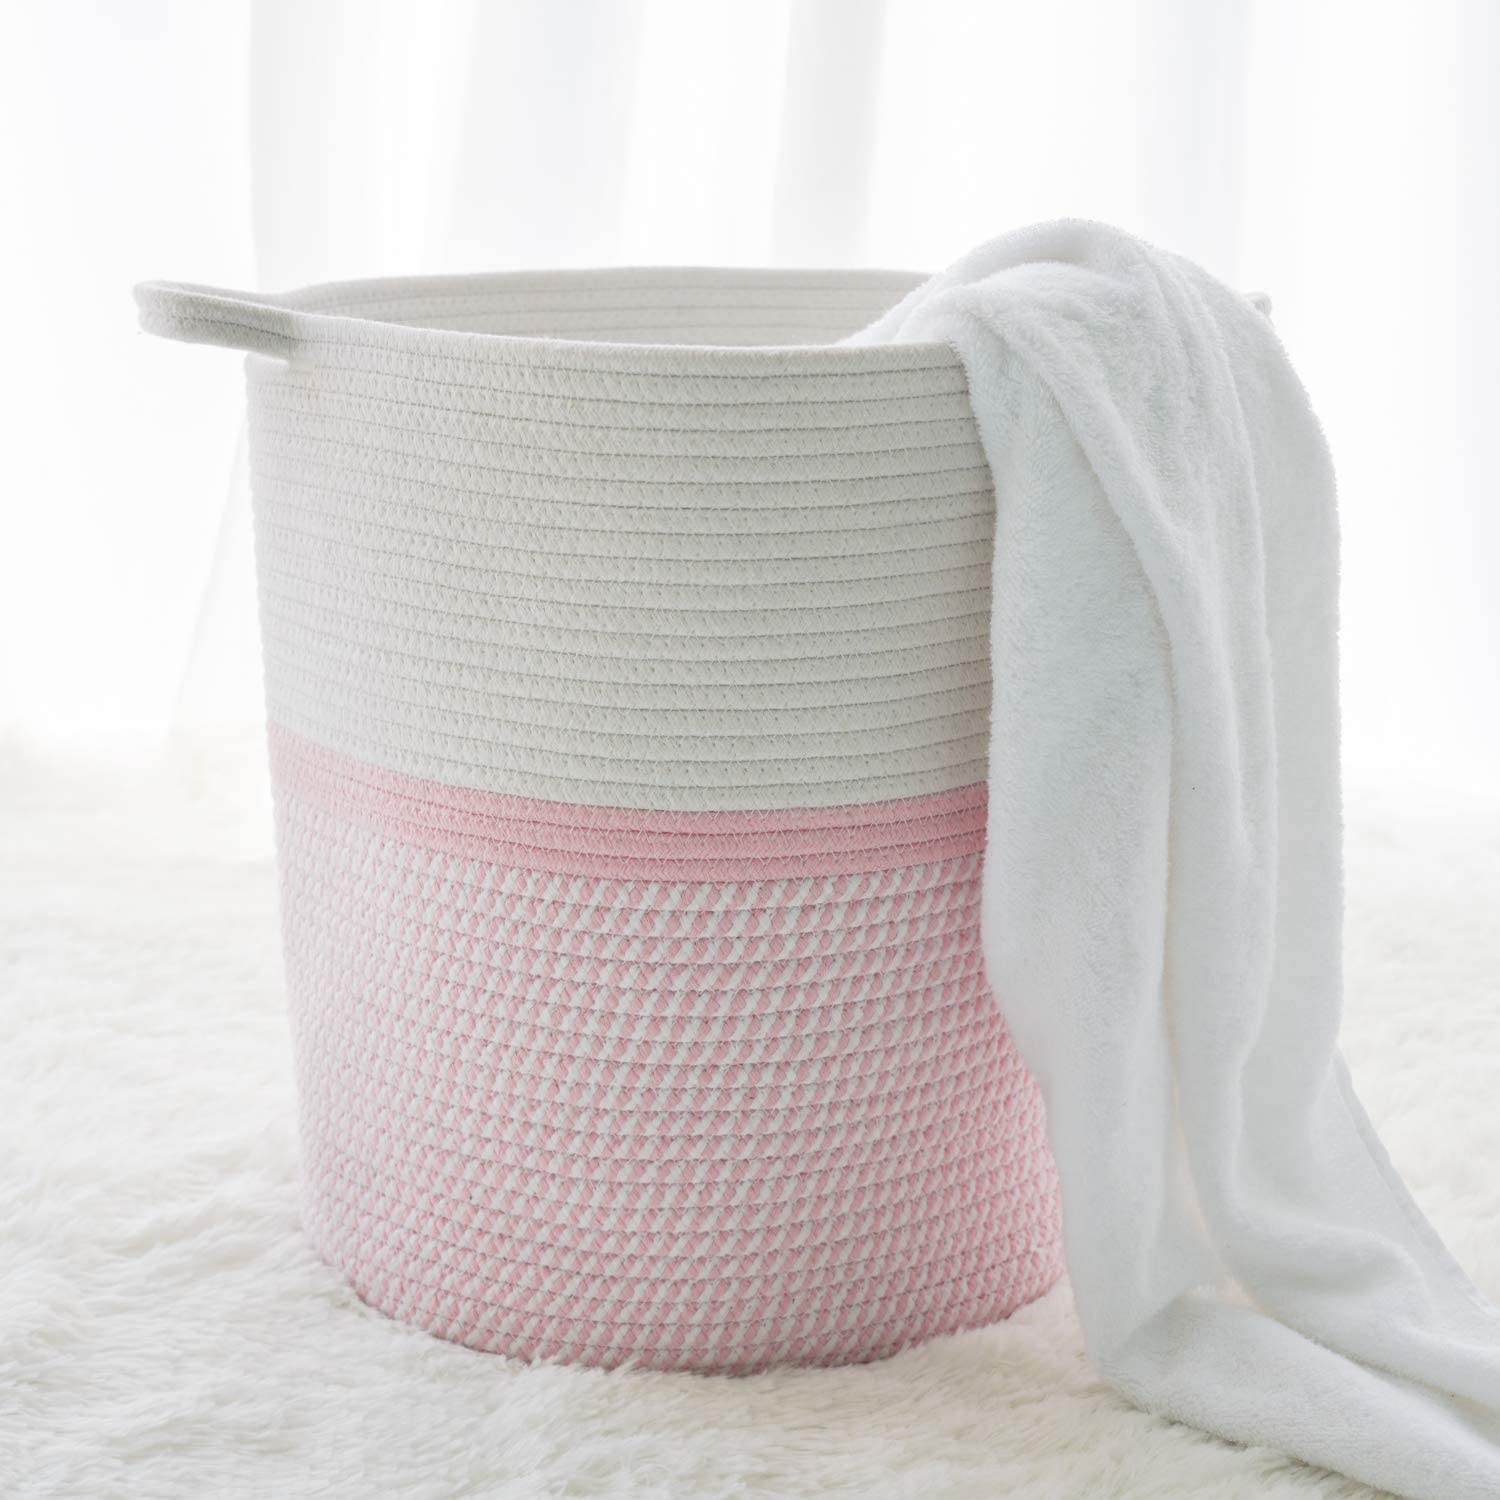 INDRESSME Cotton Large-scale sale Basket 16.2 x 14.2 Woven 13.4 inches Large special price Hamper P